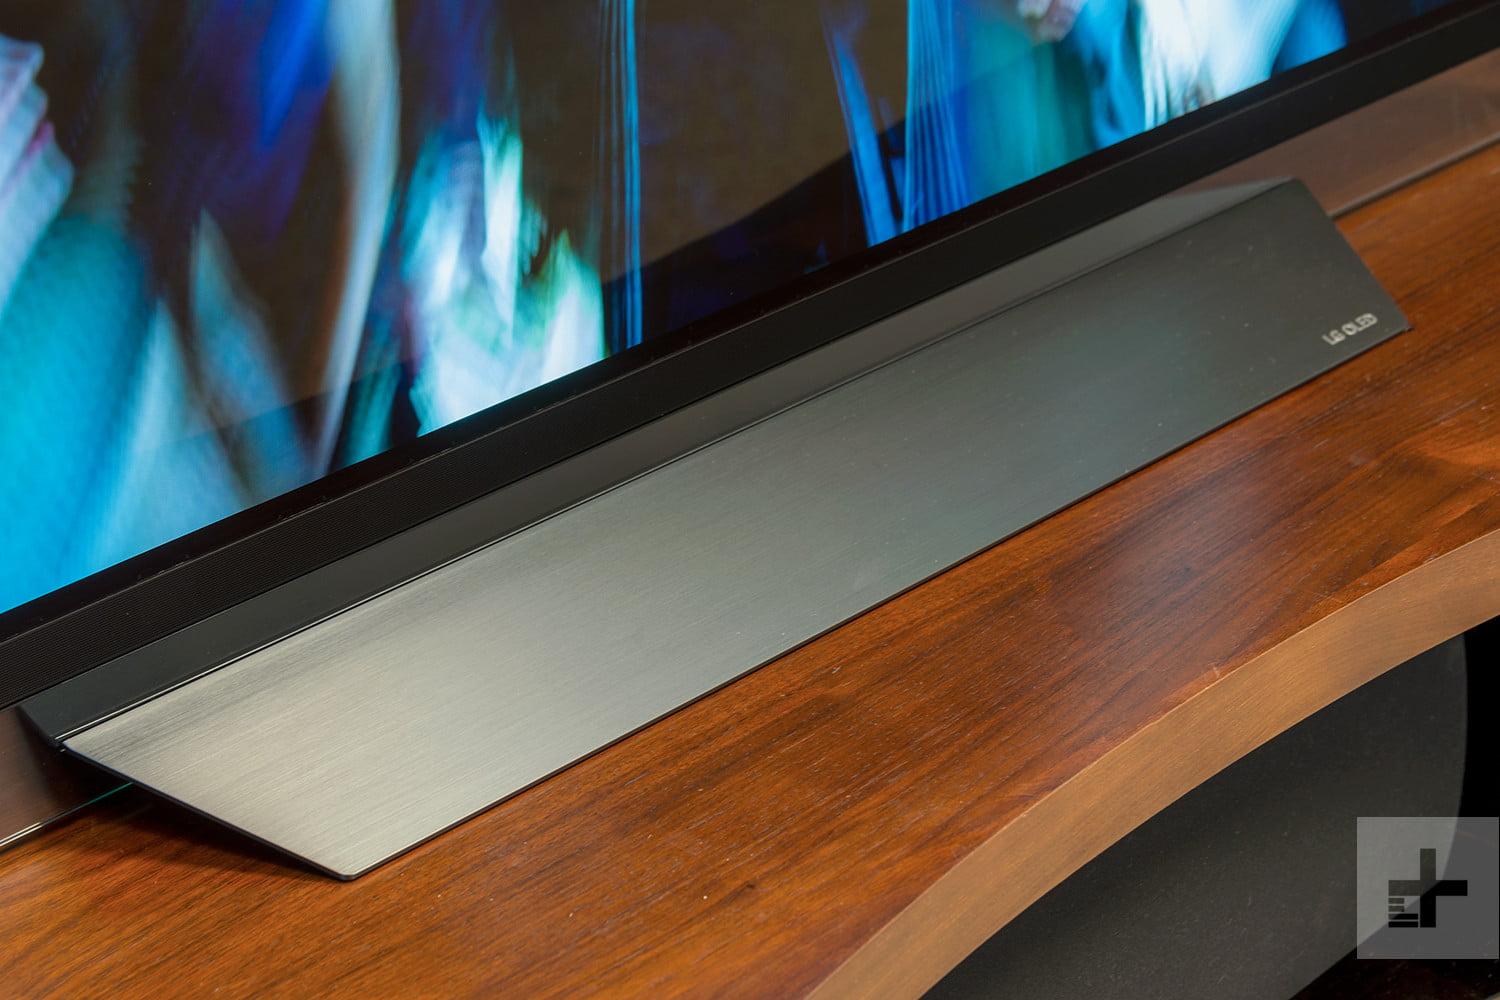 revision lg e8 oled series tv stand